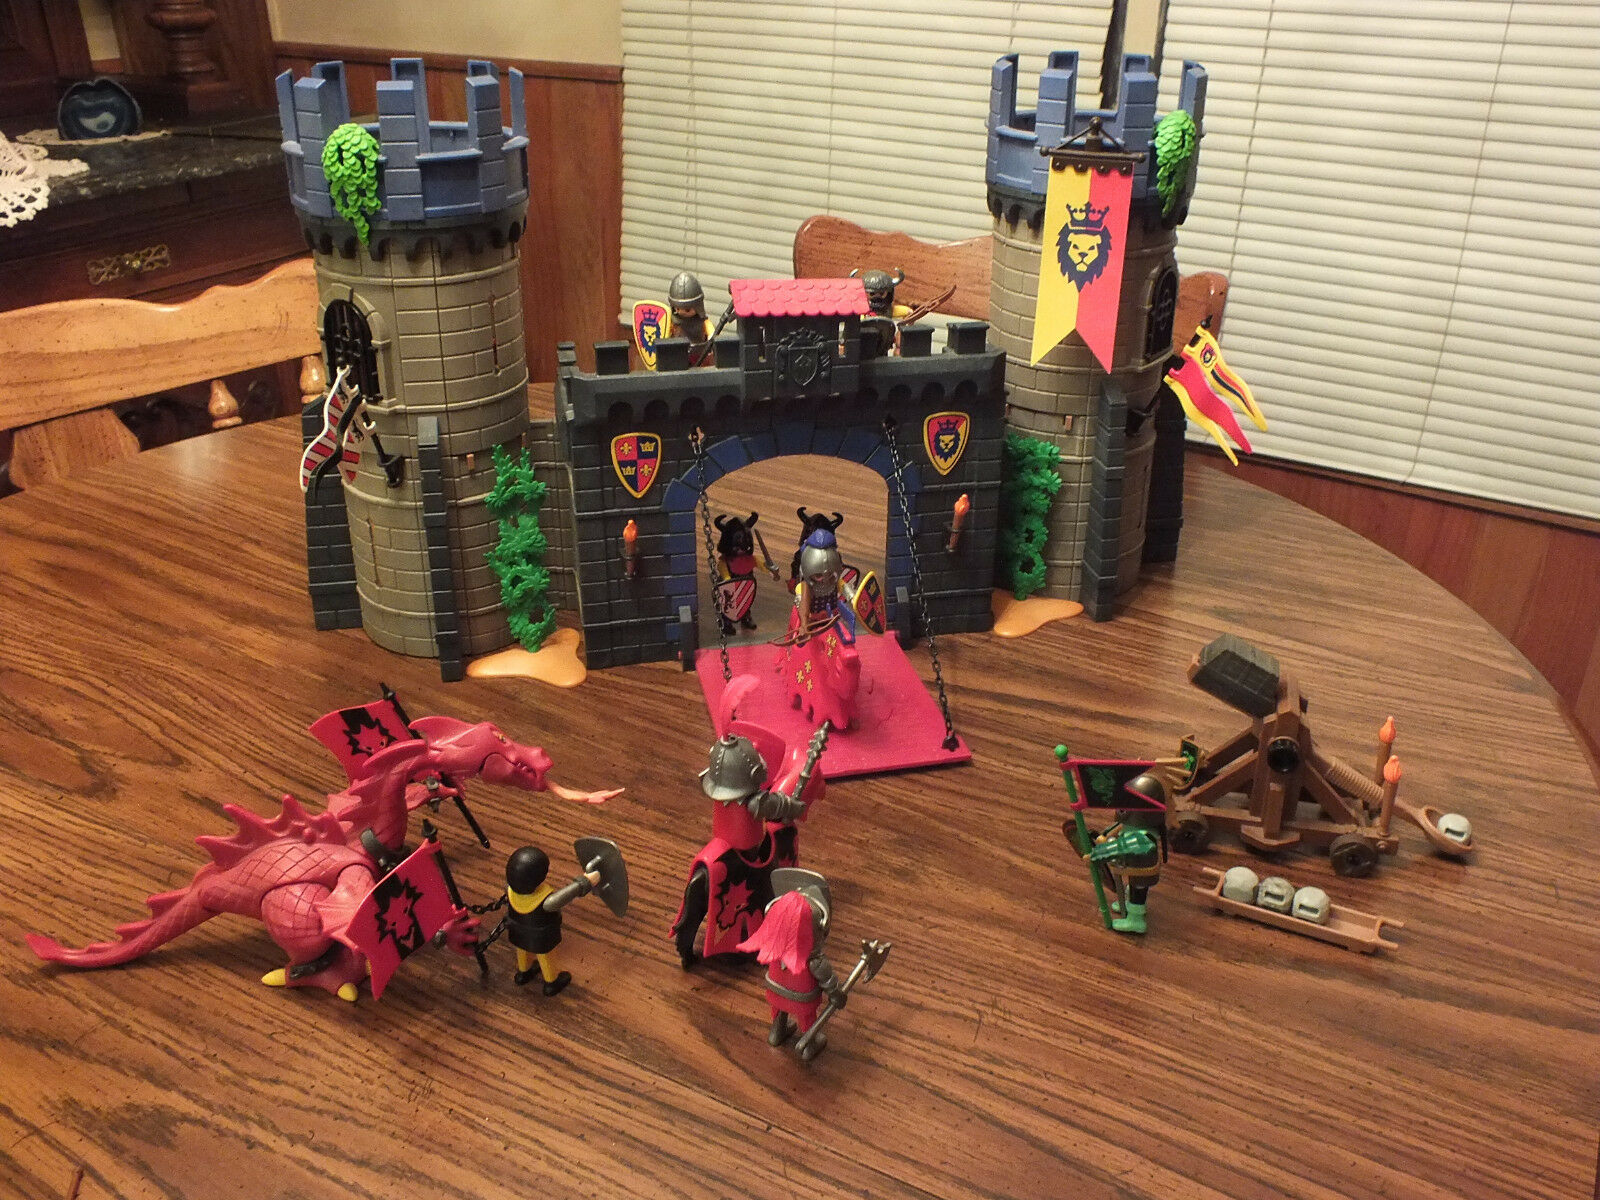 Playmobil Medieval Knights Castle w  Extra Extra Extra Dragon, Knights, Horse, Weapons 9c29d8